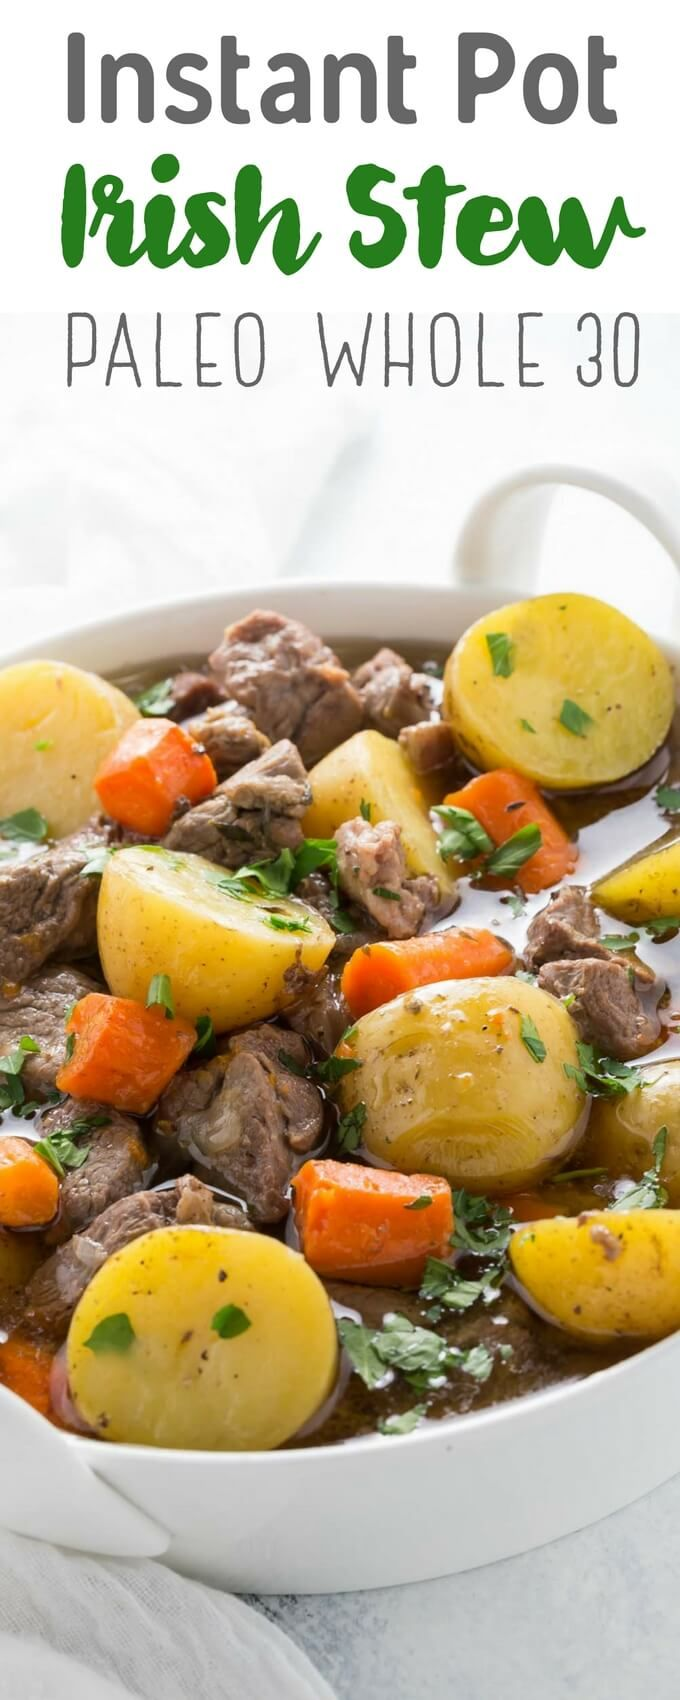 Pressure cooker Irish stew is an adaptation of a classic recipe with lamb, potatoes, carrots and herbs. It's gluten free, paleo and whole30, perfect for your Instant Pot or other electric pressure cooker. A great St Patricks' Day recipe too. | https://lomejordelaweb.es/